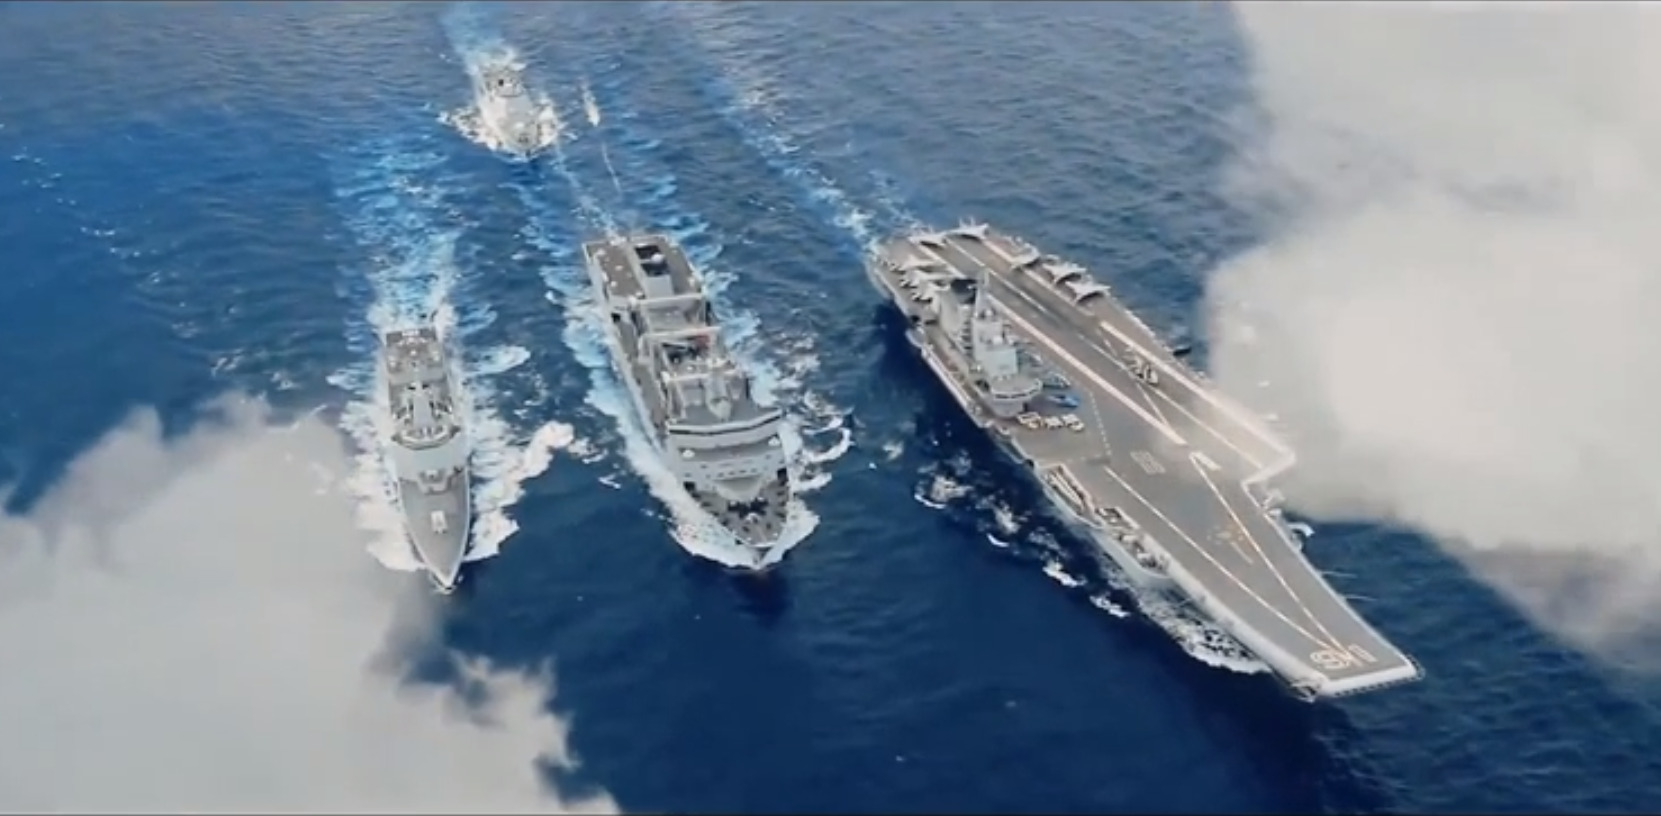 Happy Birthday To China's Navy: Epic Video Showing Chinese Naval Might Released Online